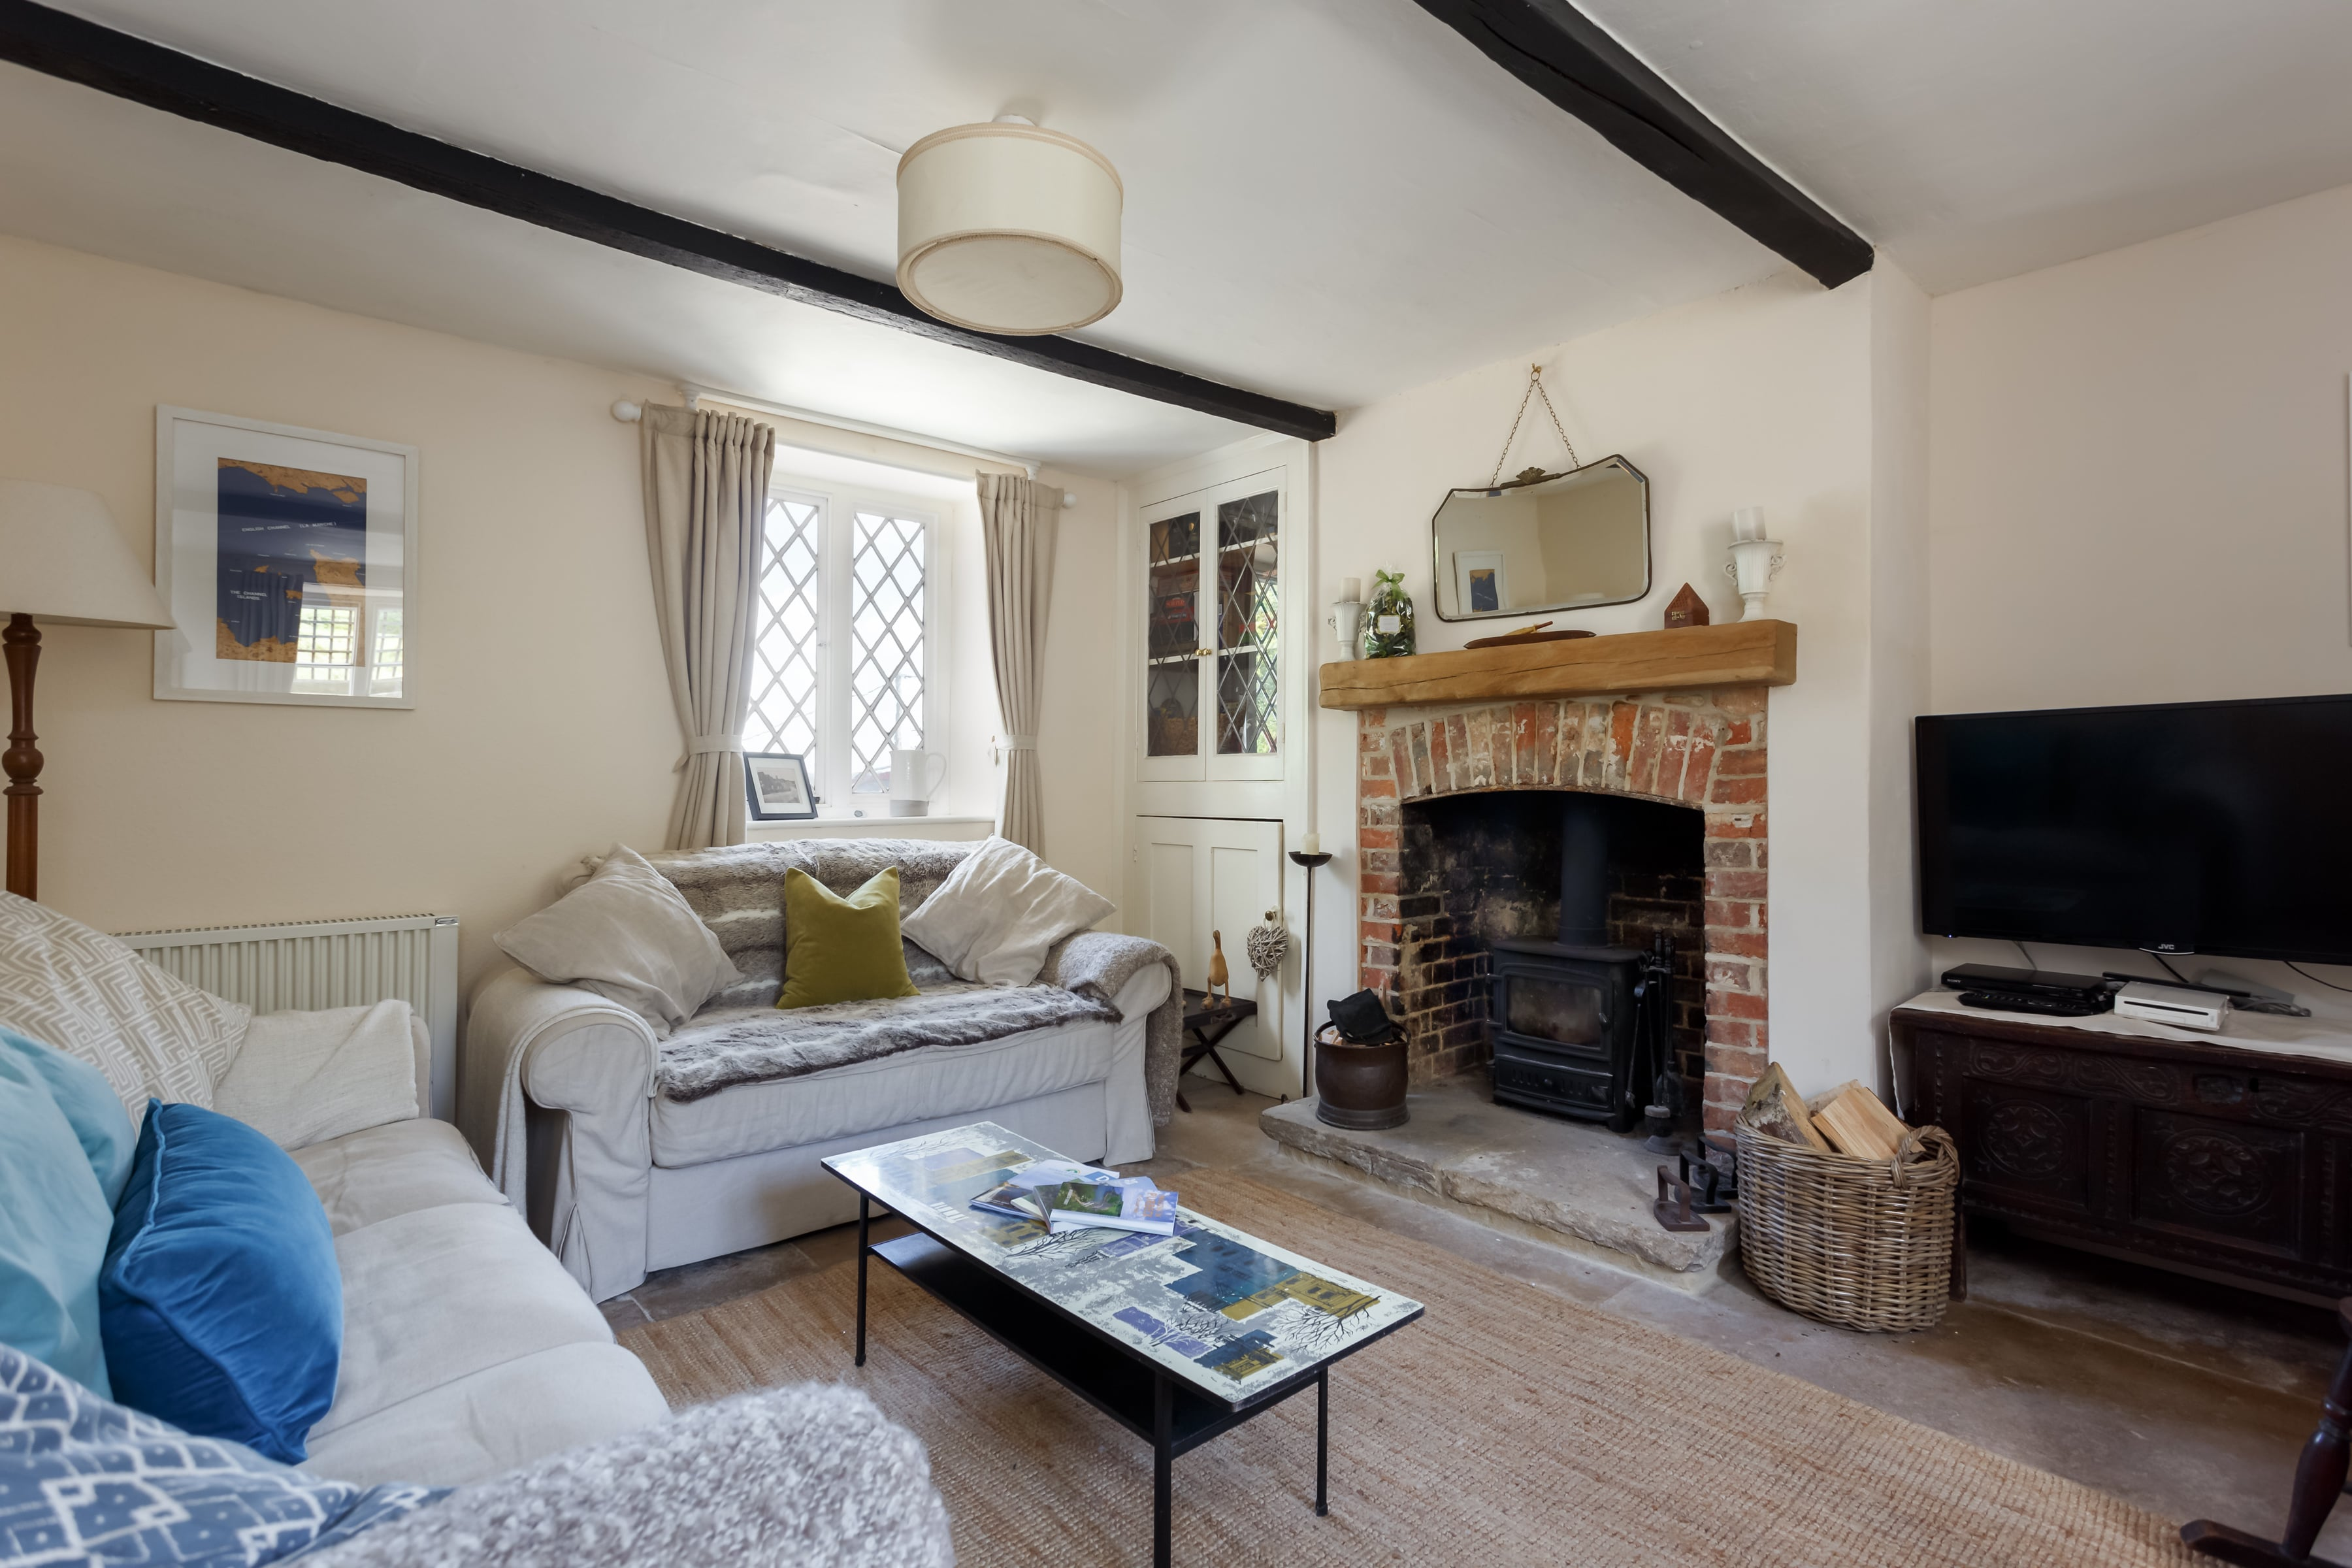 luxury purbeck accommodation living room